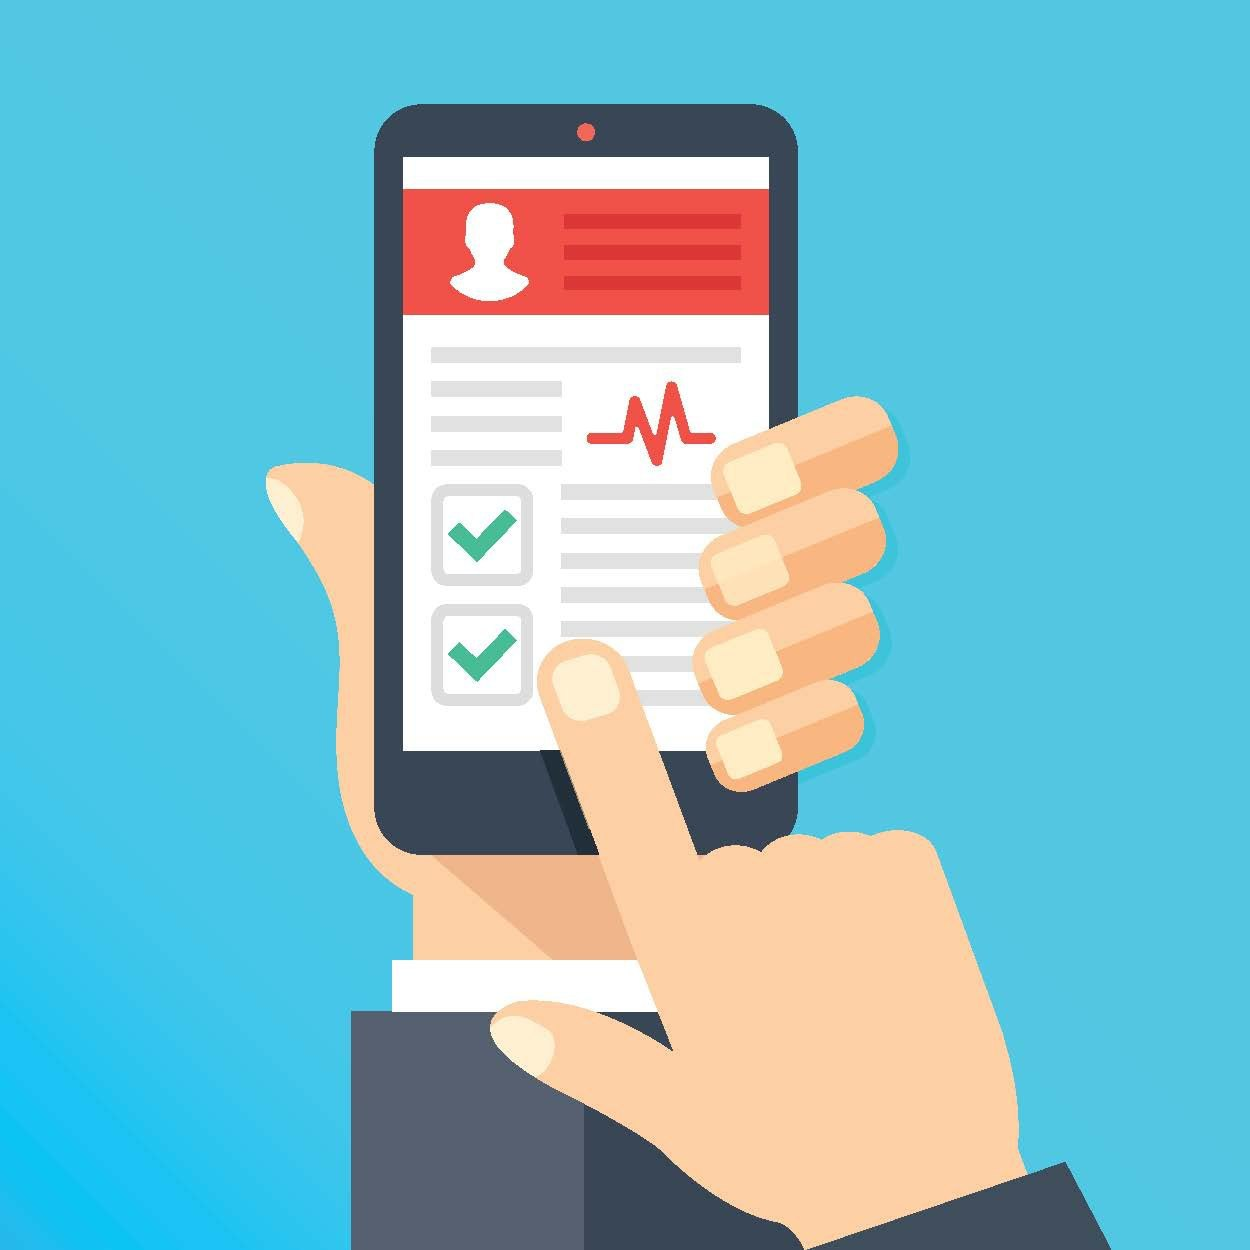 Going Mobile: Embracing Technology to Improve Your Practice and Quality of Life